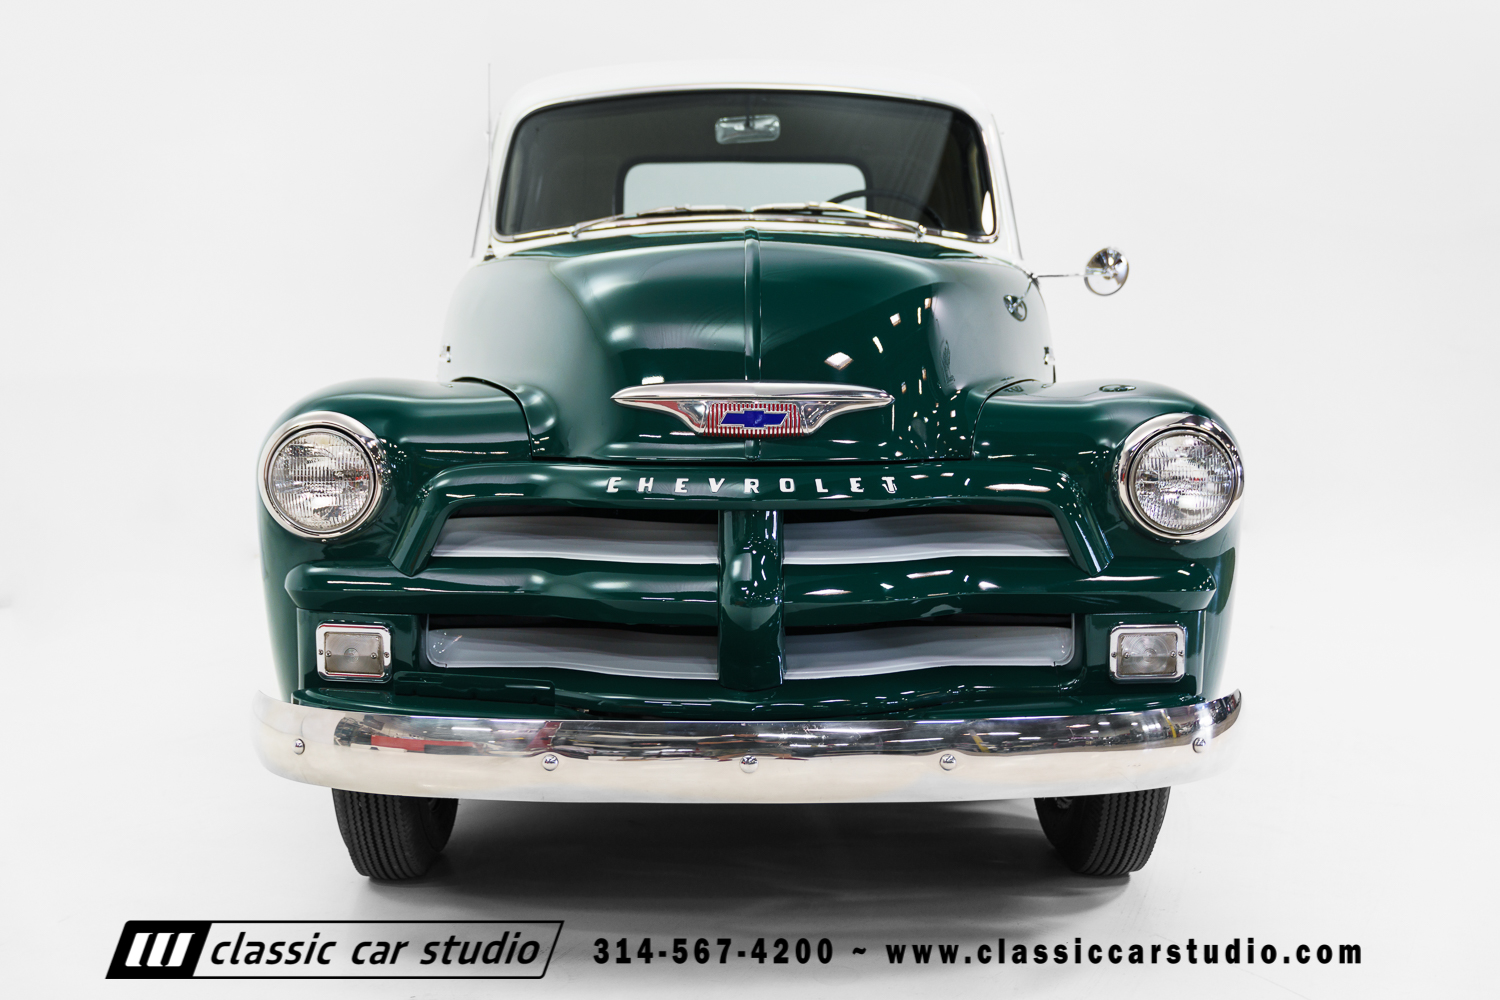 1954 Chevrolet 3100 | Classic Car Studio